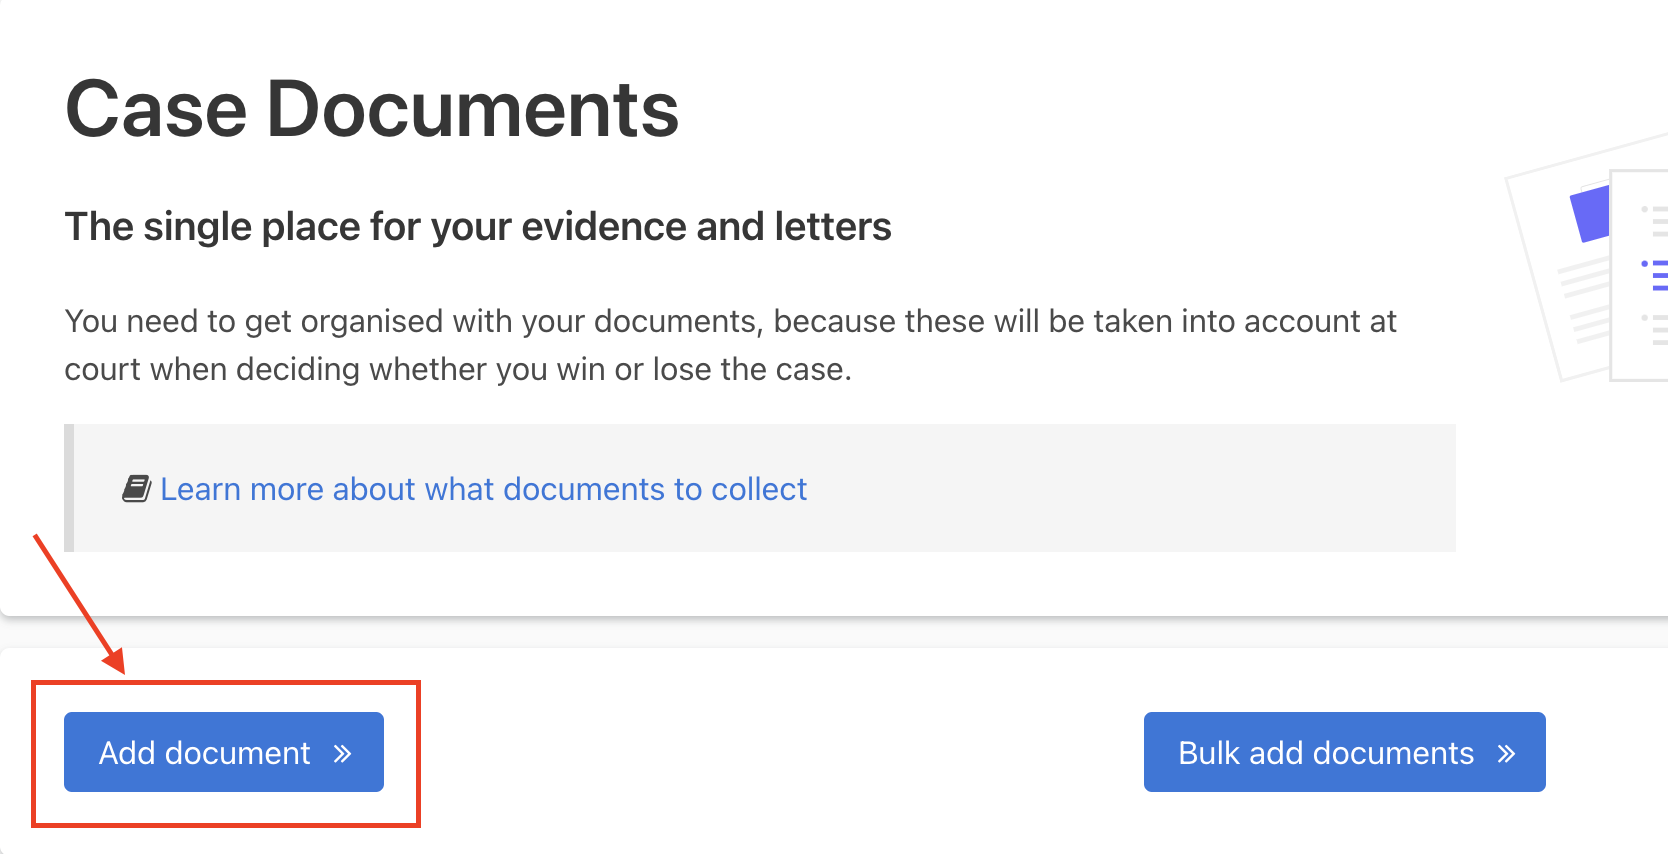 The 'Add document' button is the next link on the page after 'Learn more about what documents to collect'